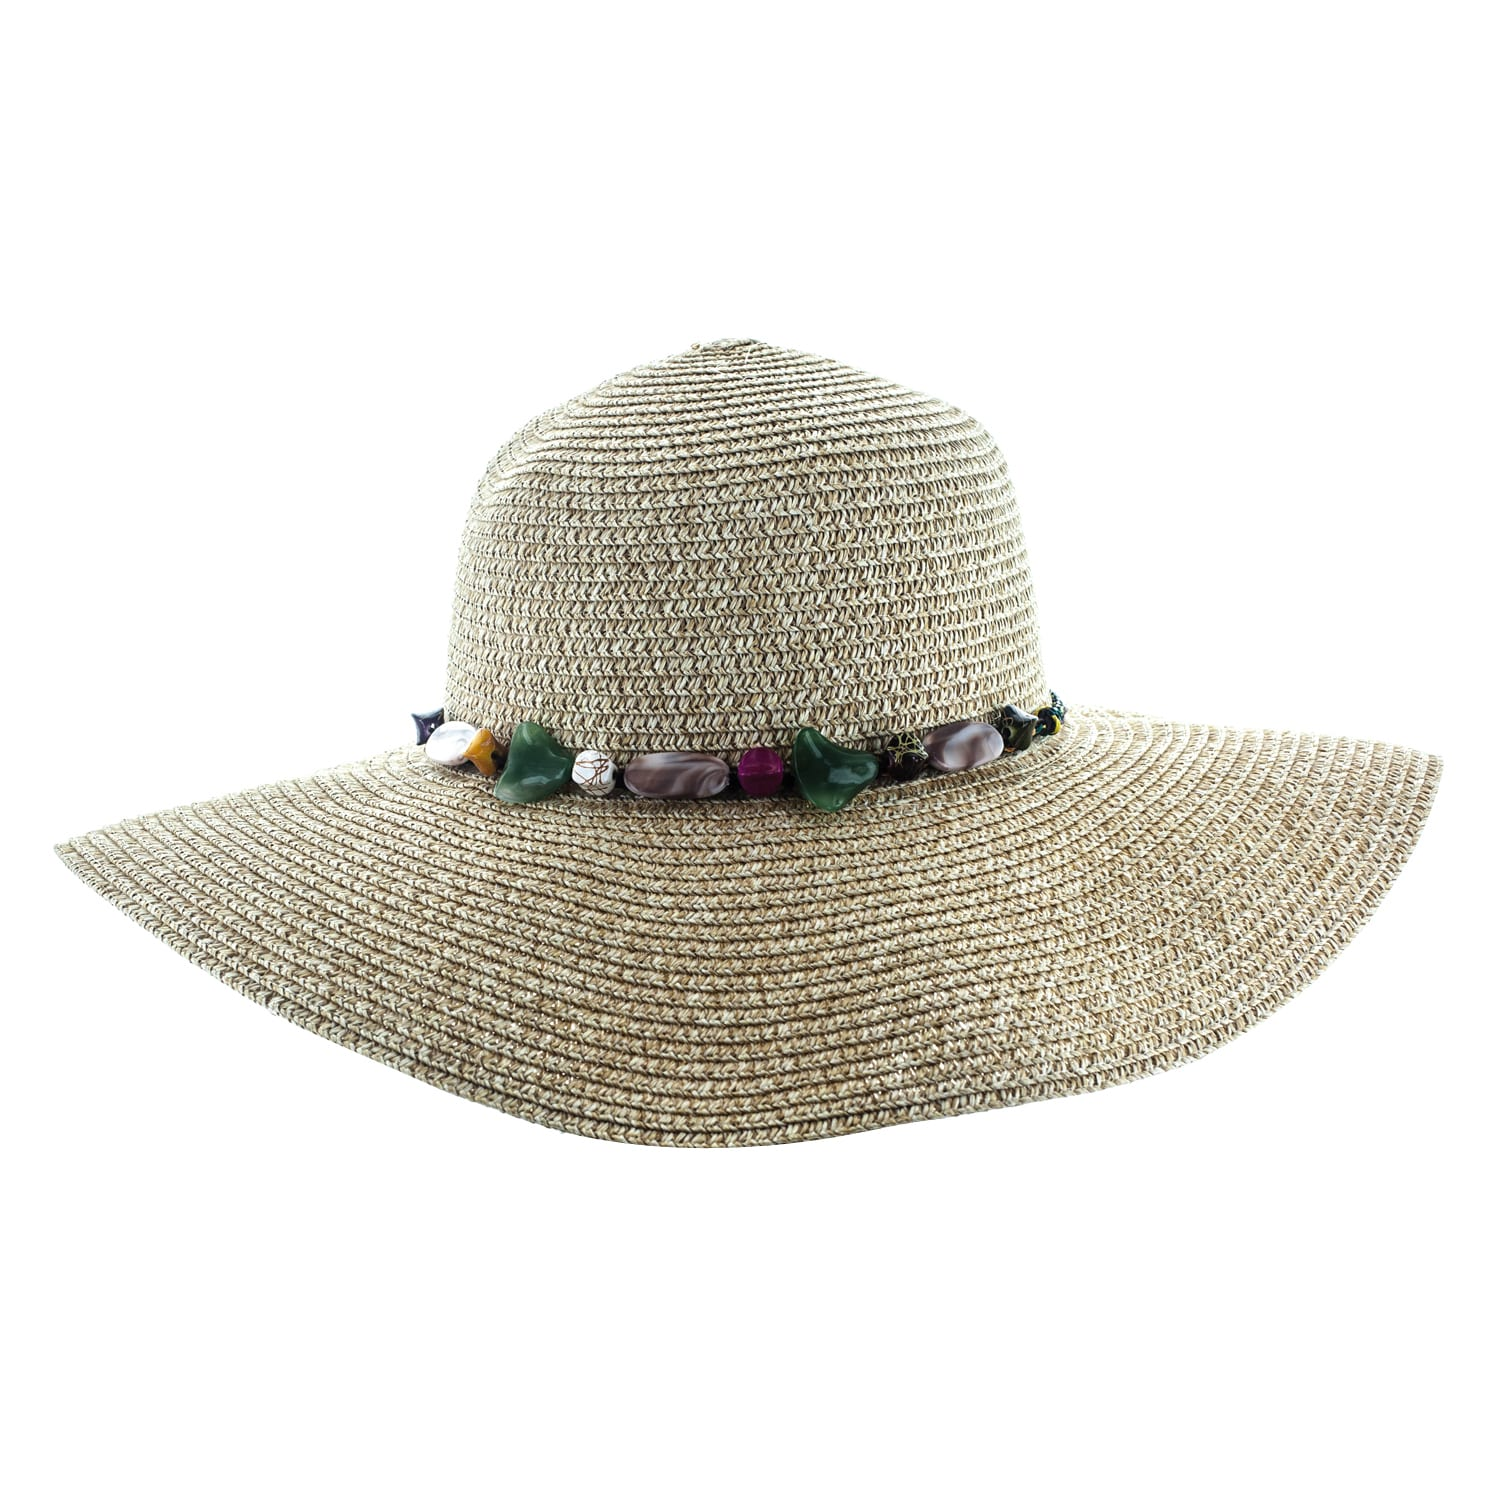 34ccbab03b3 Shop Faddism Womens Woven Sun Hat With Colorful Stones Adorned Hatband -  Free Shipping On Orders Over  45 - Overstock.com - 12186590